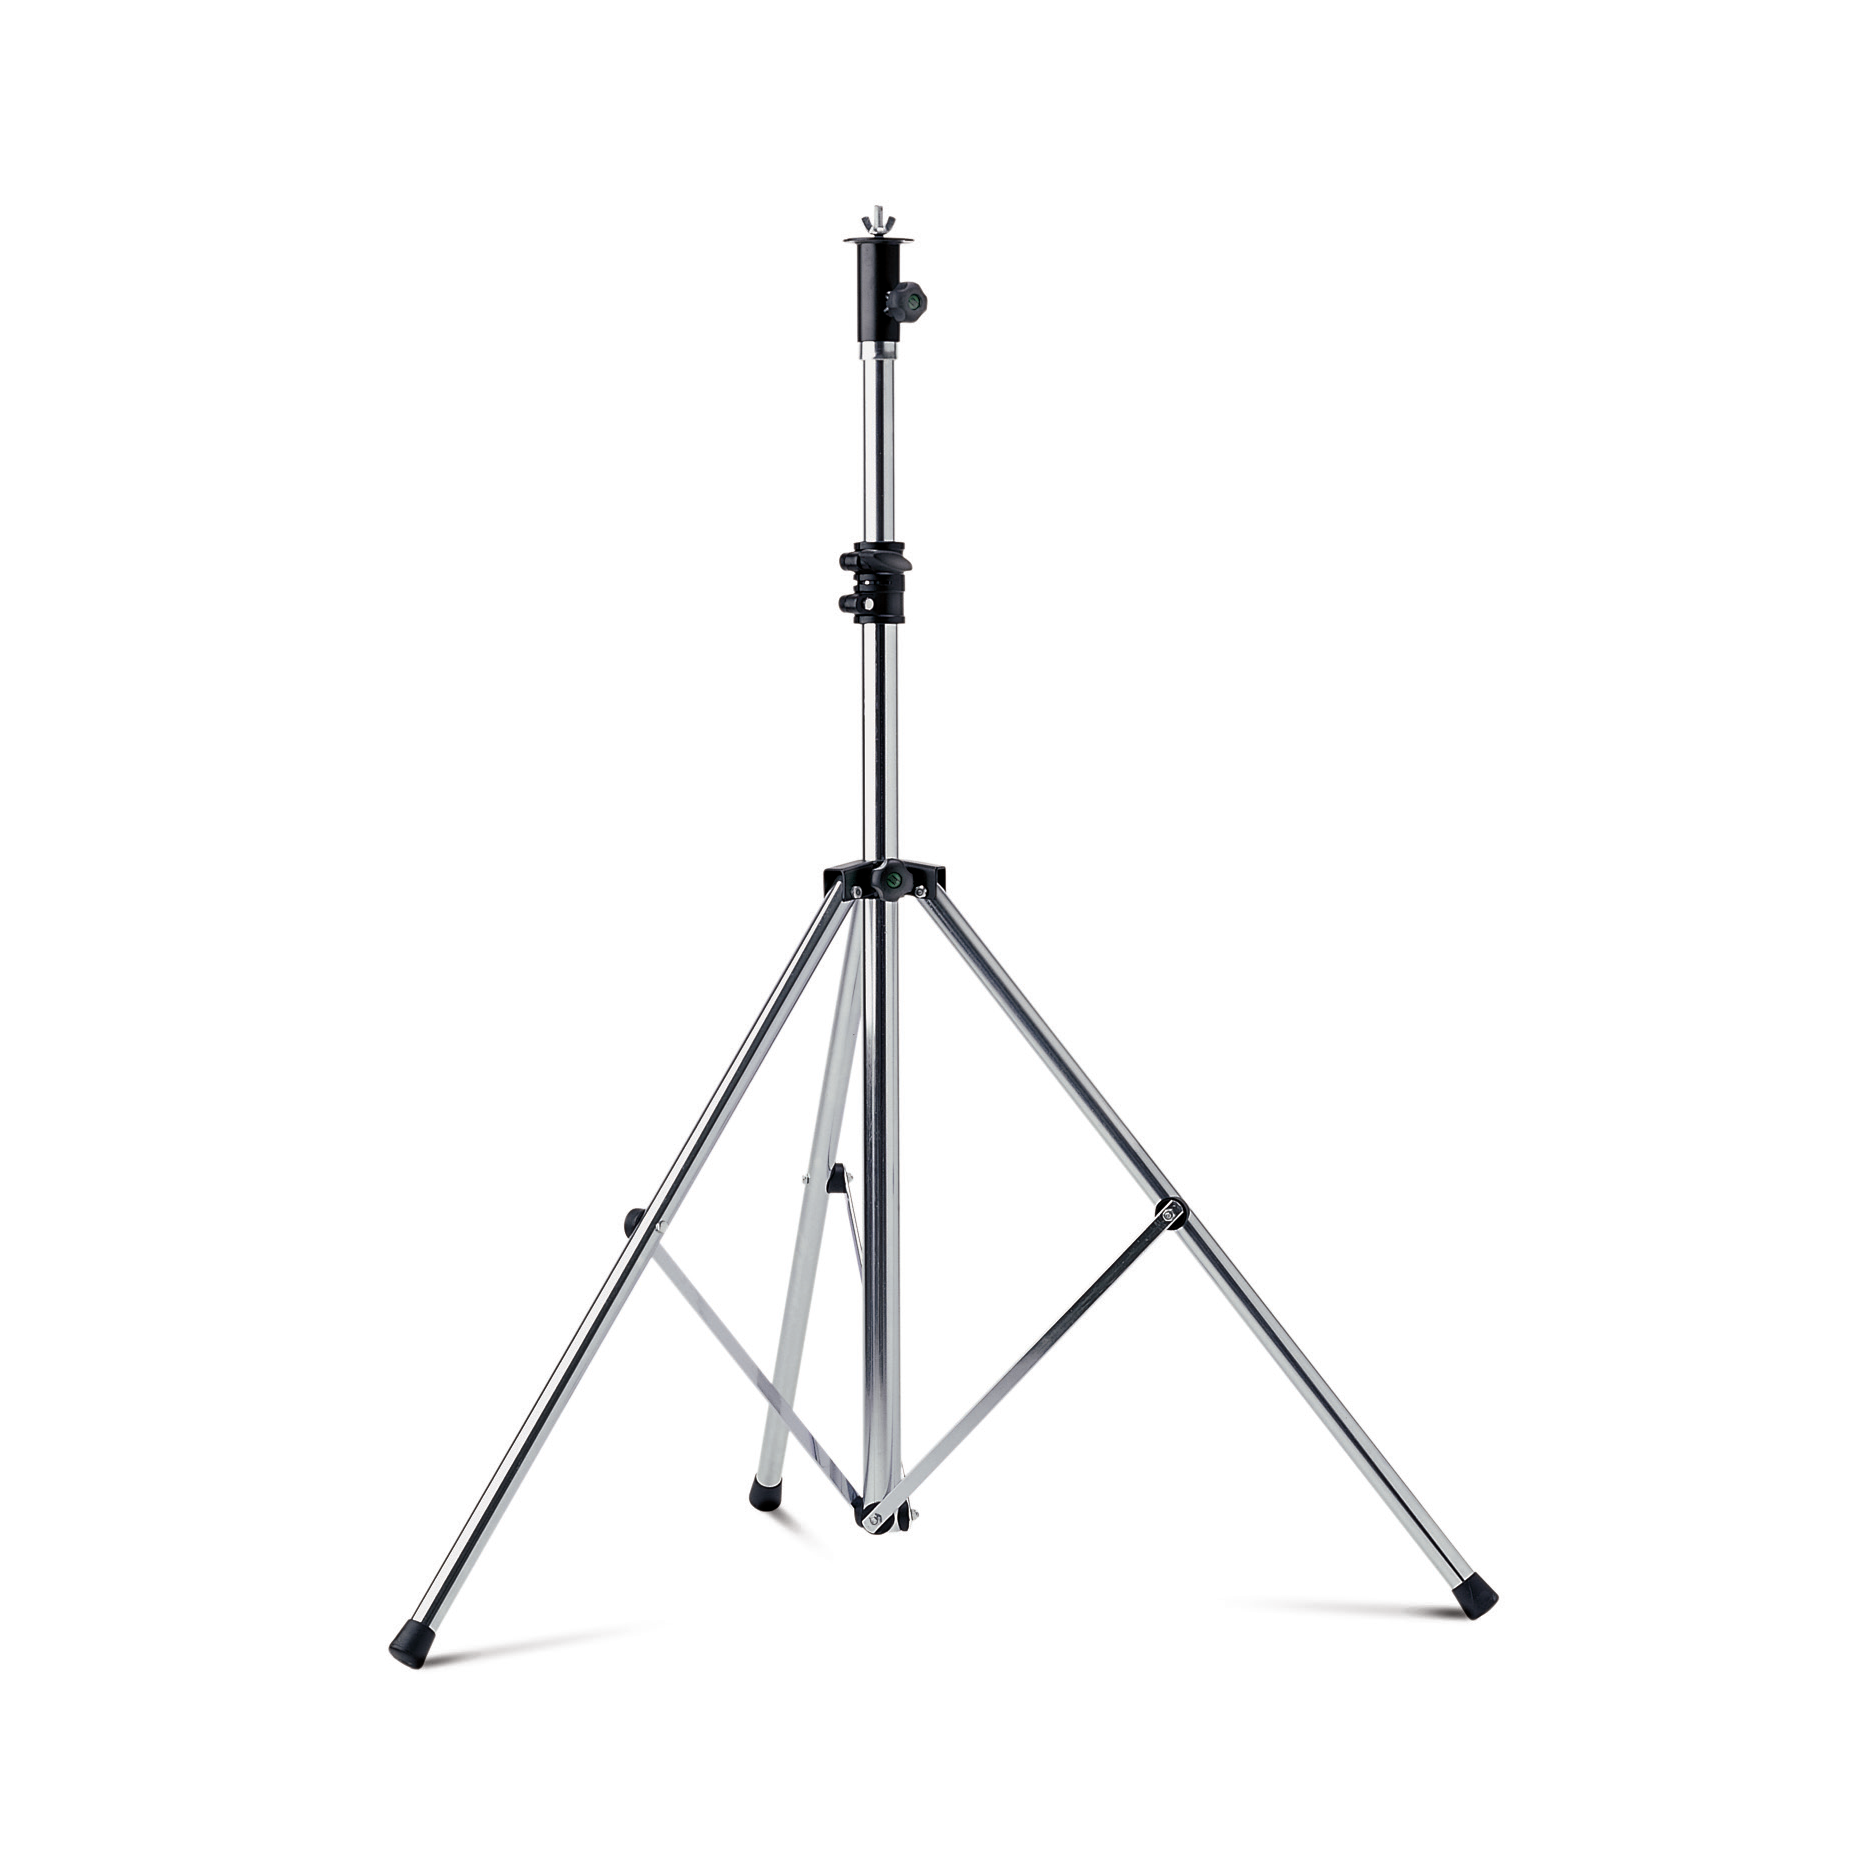 00431 floor stand with tripod legs